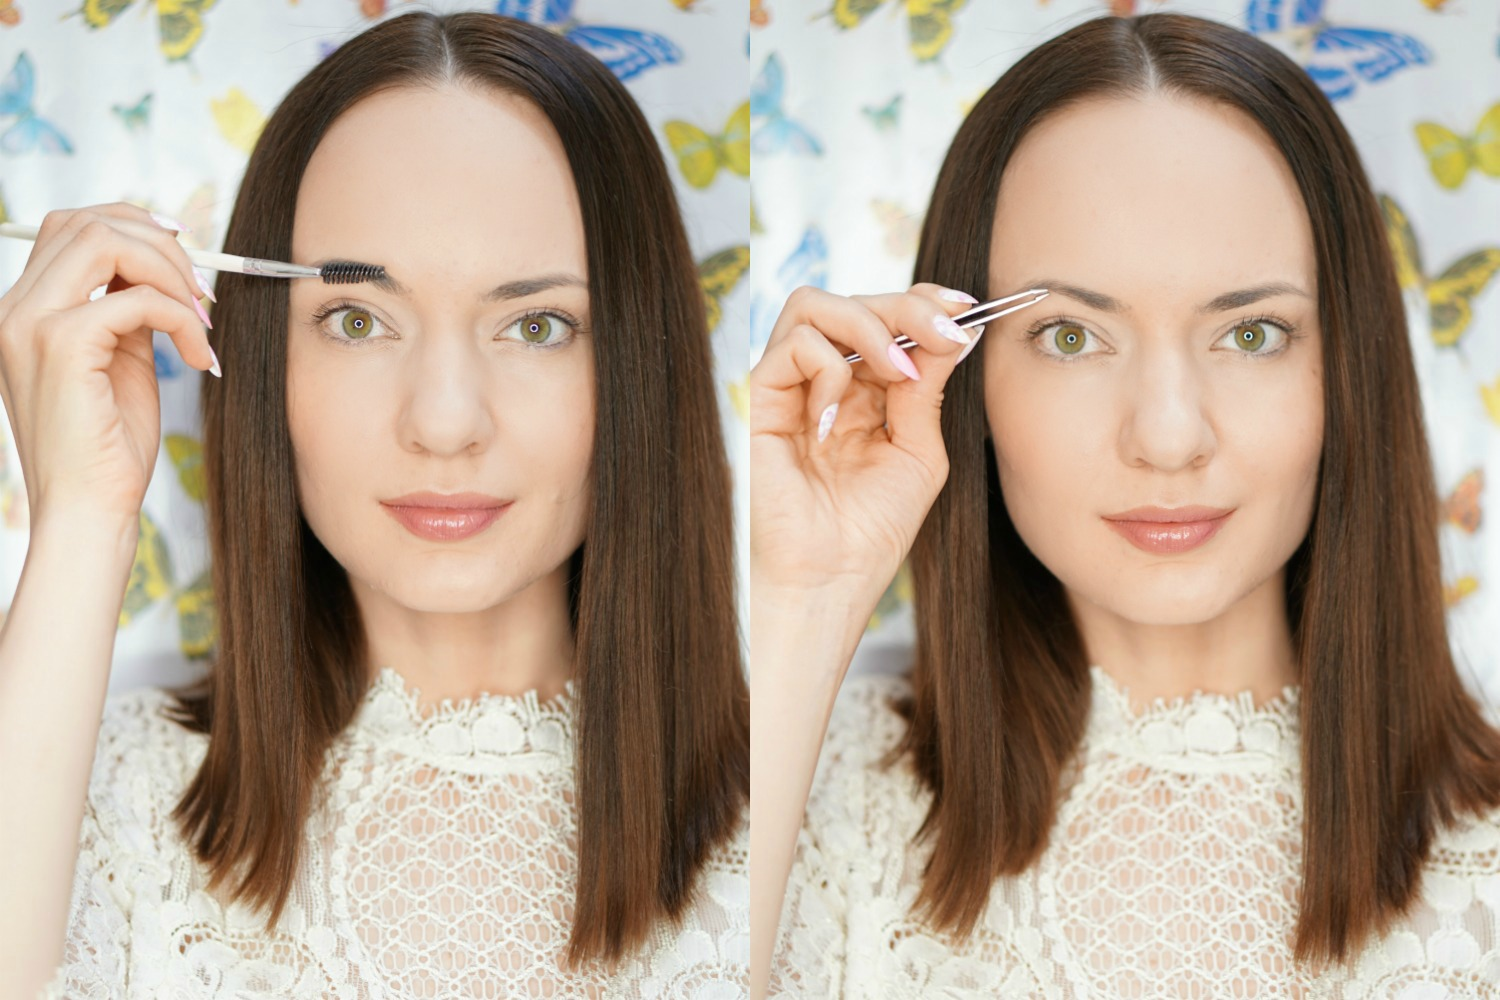 StyleSprinter - Brows 101 Tutorial - Brush and Pluck